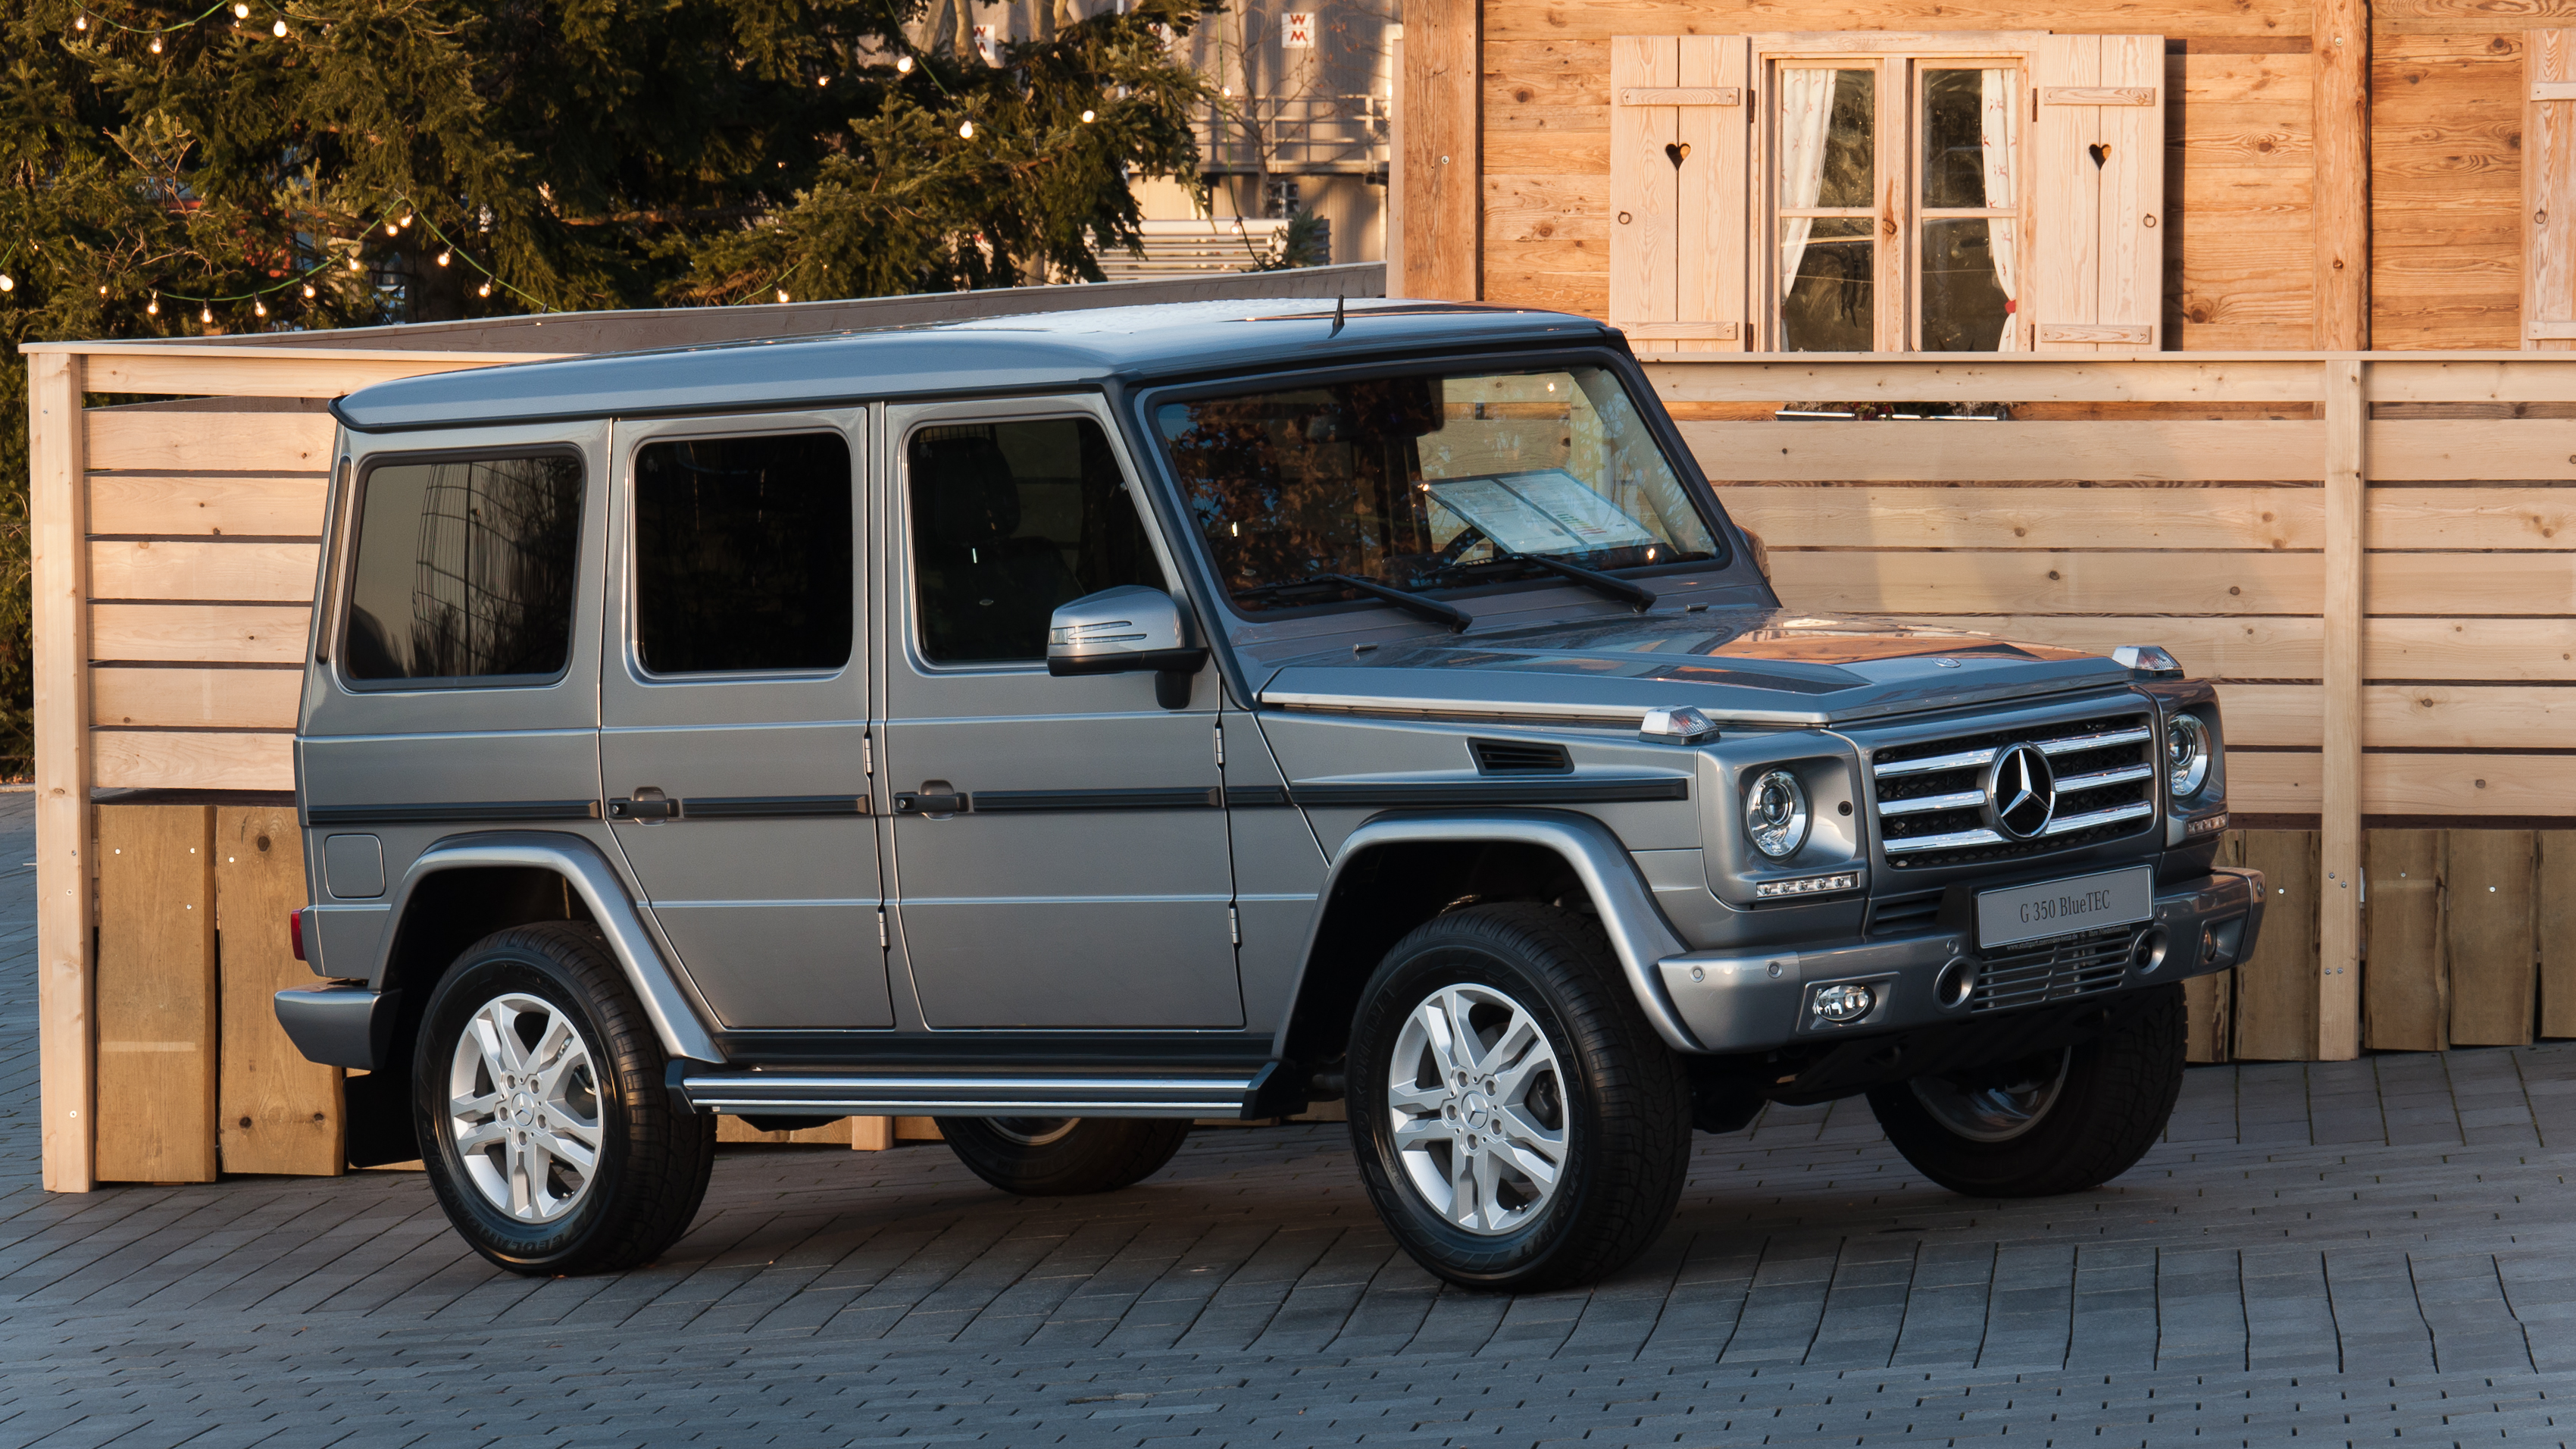 amg nothing class in drive g for review front news sale but a mercedes wagen benz en three first quarter motion